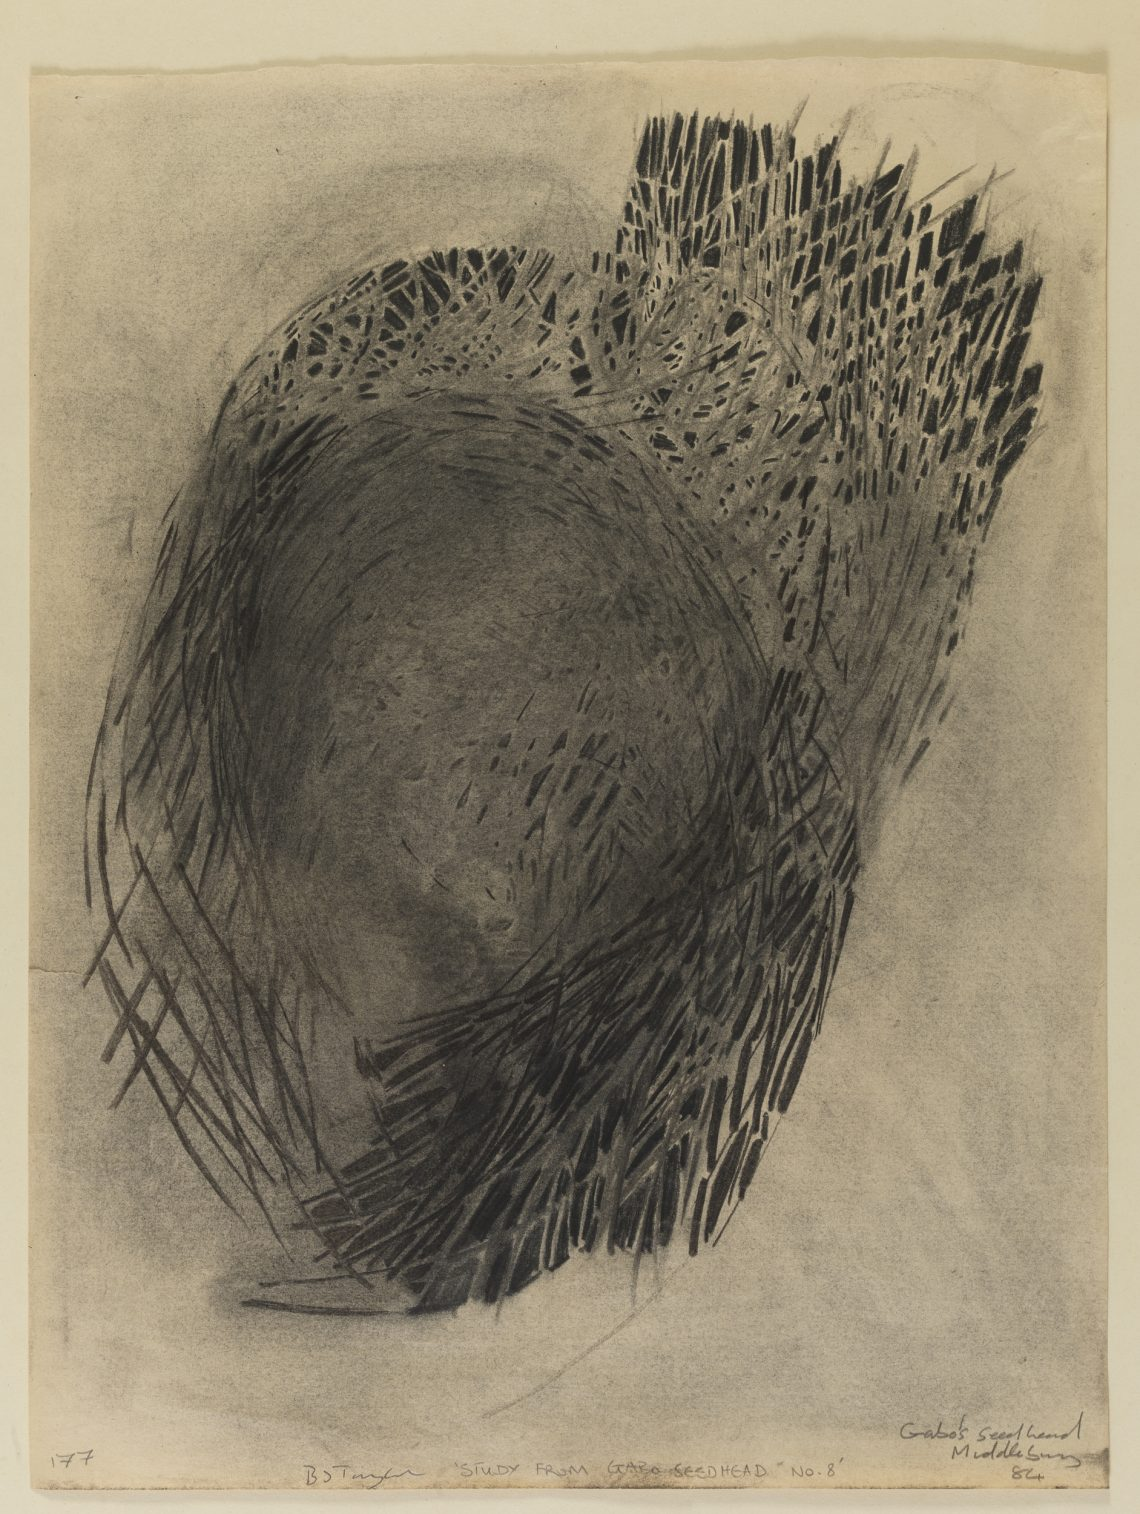 Brian_Taylor_Study_for_Naum_Gabo's_Seed_Head_8